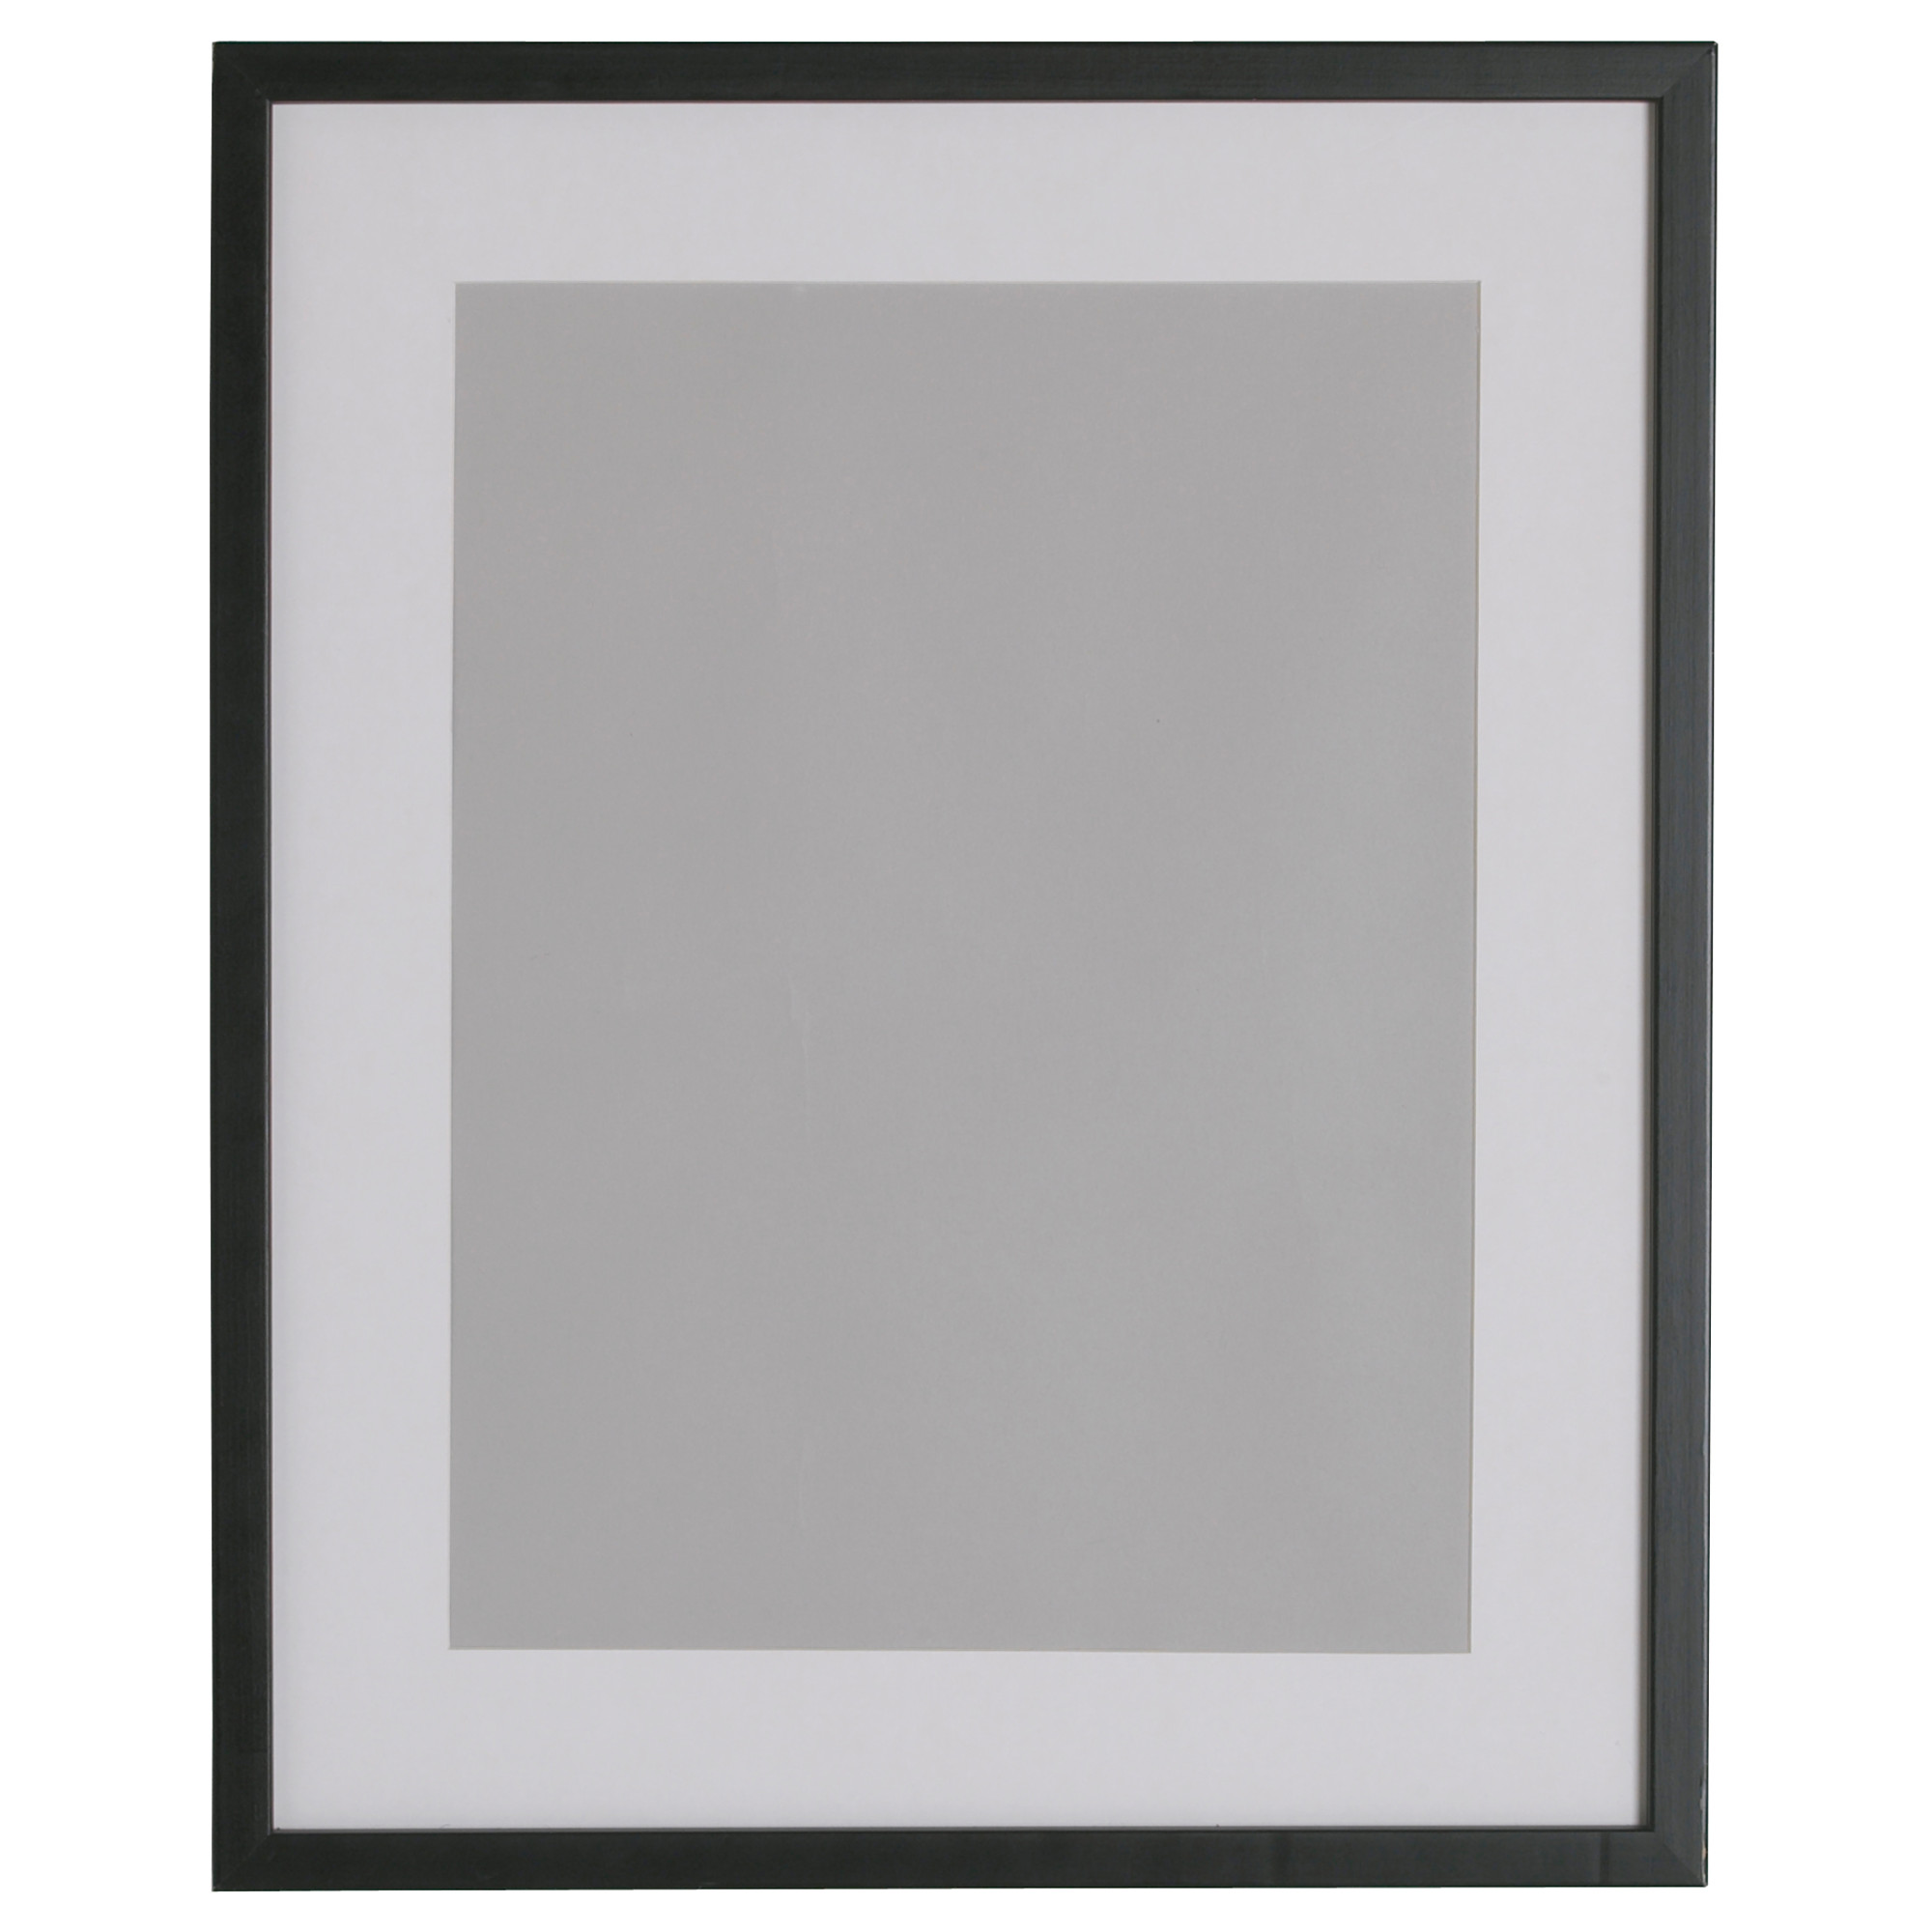 Frame Black Border for Max 1ft x 1ft Painting or Photo – TSKTECH.IN